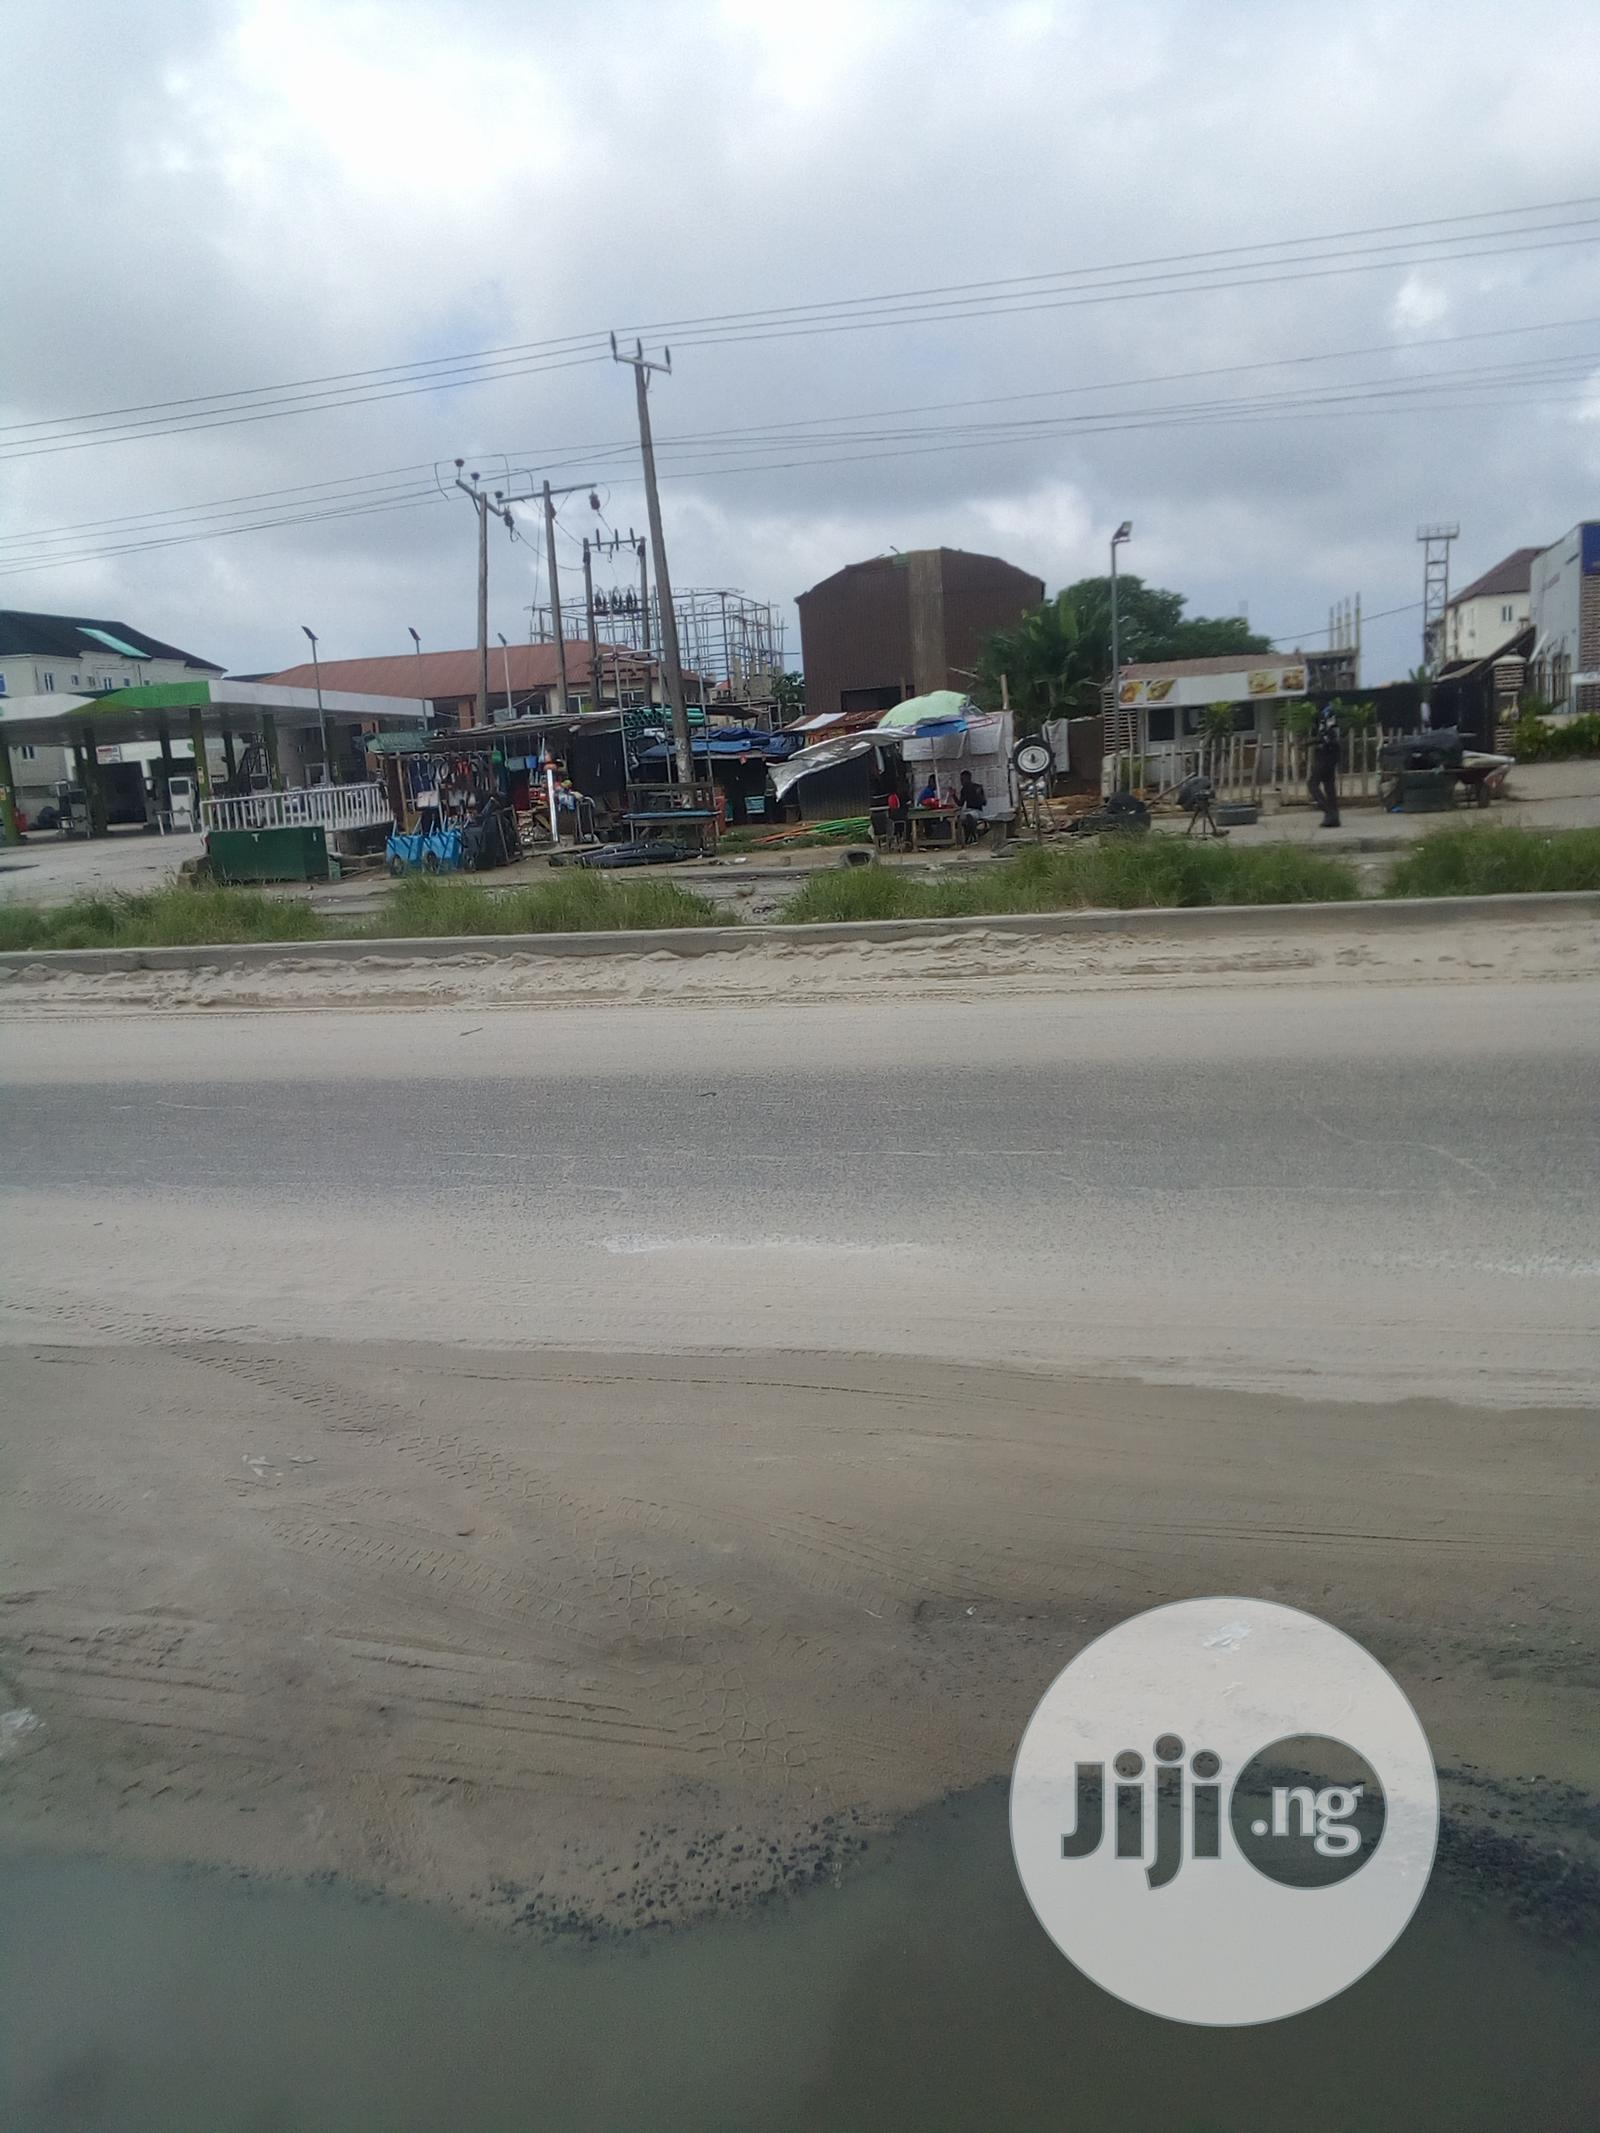 Two Plot Warehouse For Lease | Land & Plots for Rent for sale in Ajah, Lagos State, Nigeria